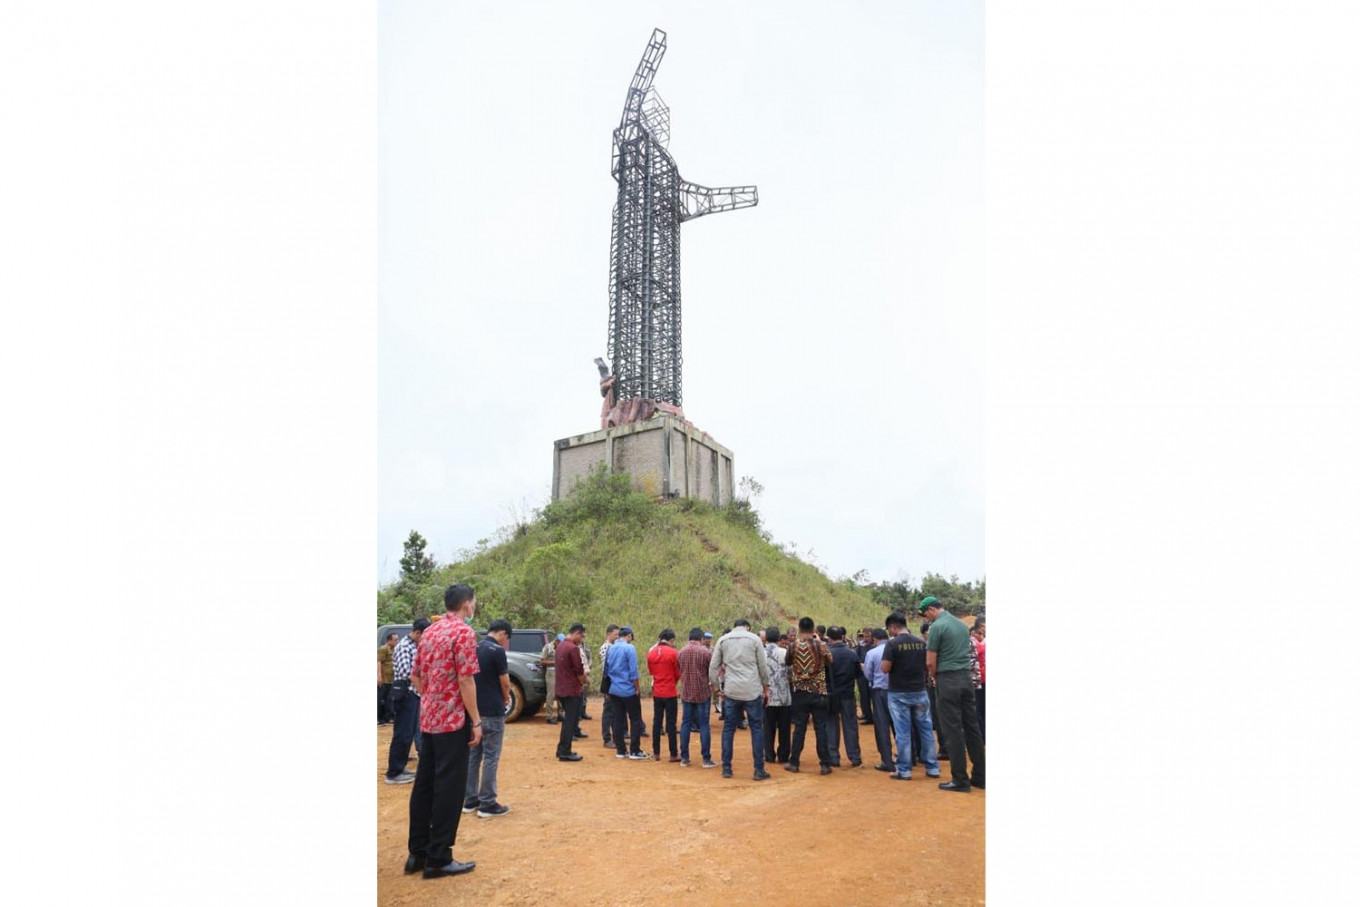 Stalled Jesus statue project dismantled in North Sumatra because of construction flaws